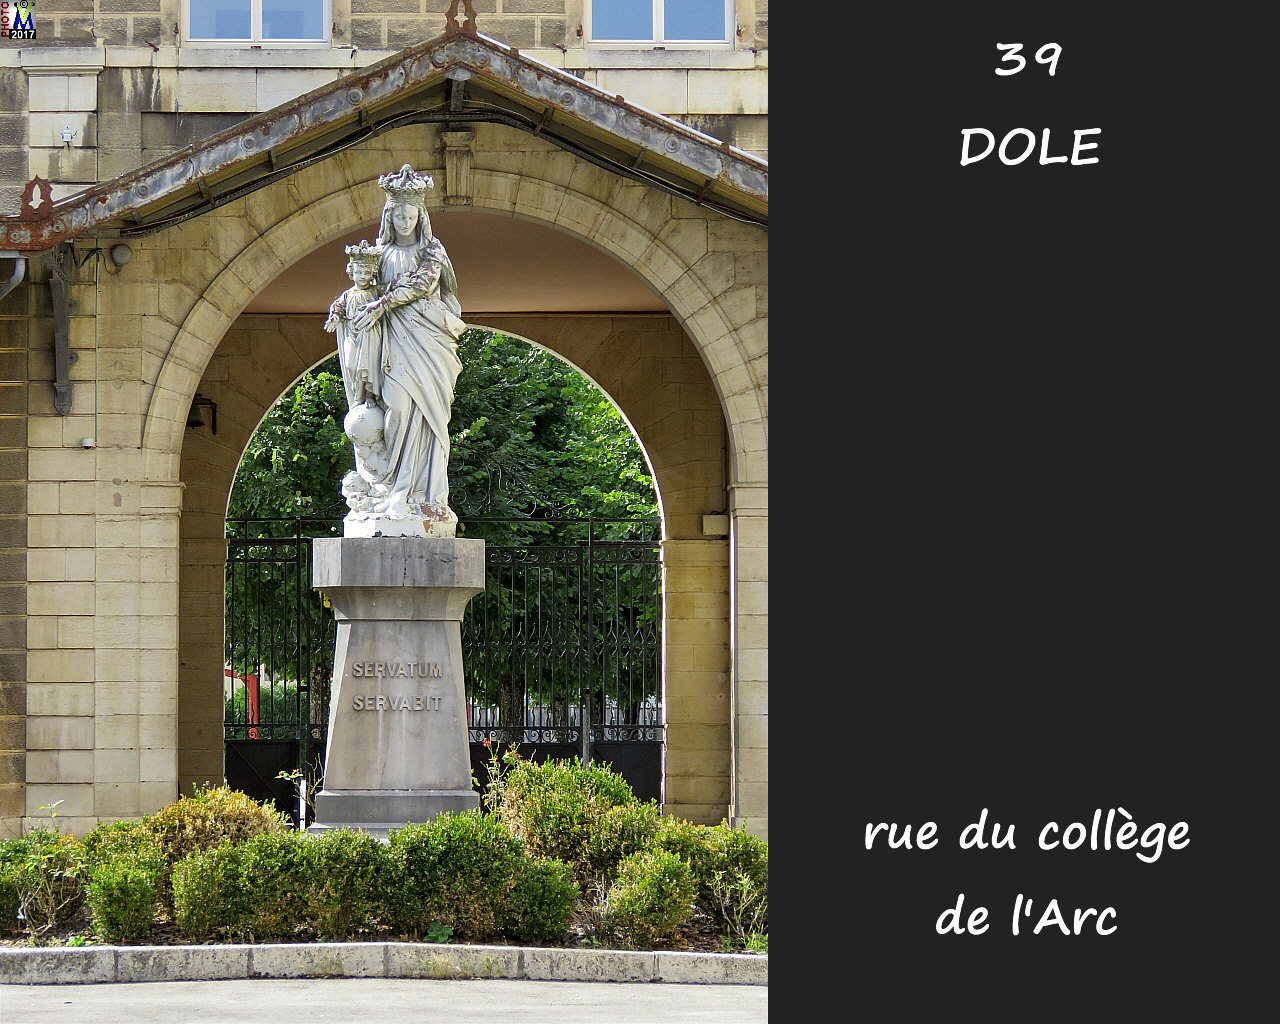 39DOLE_rue-college-Arc-108.jpg